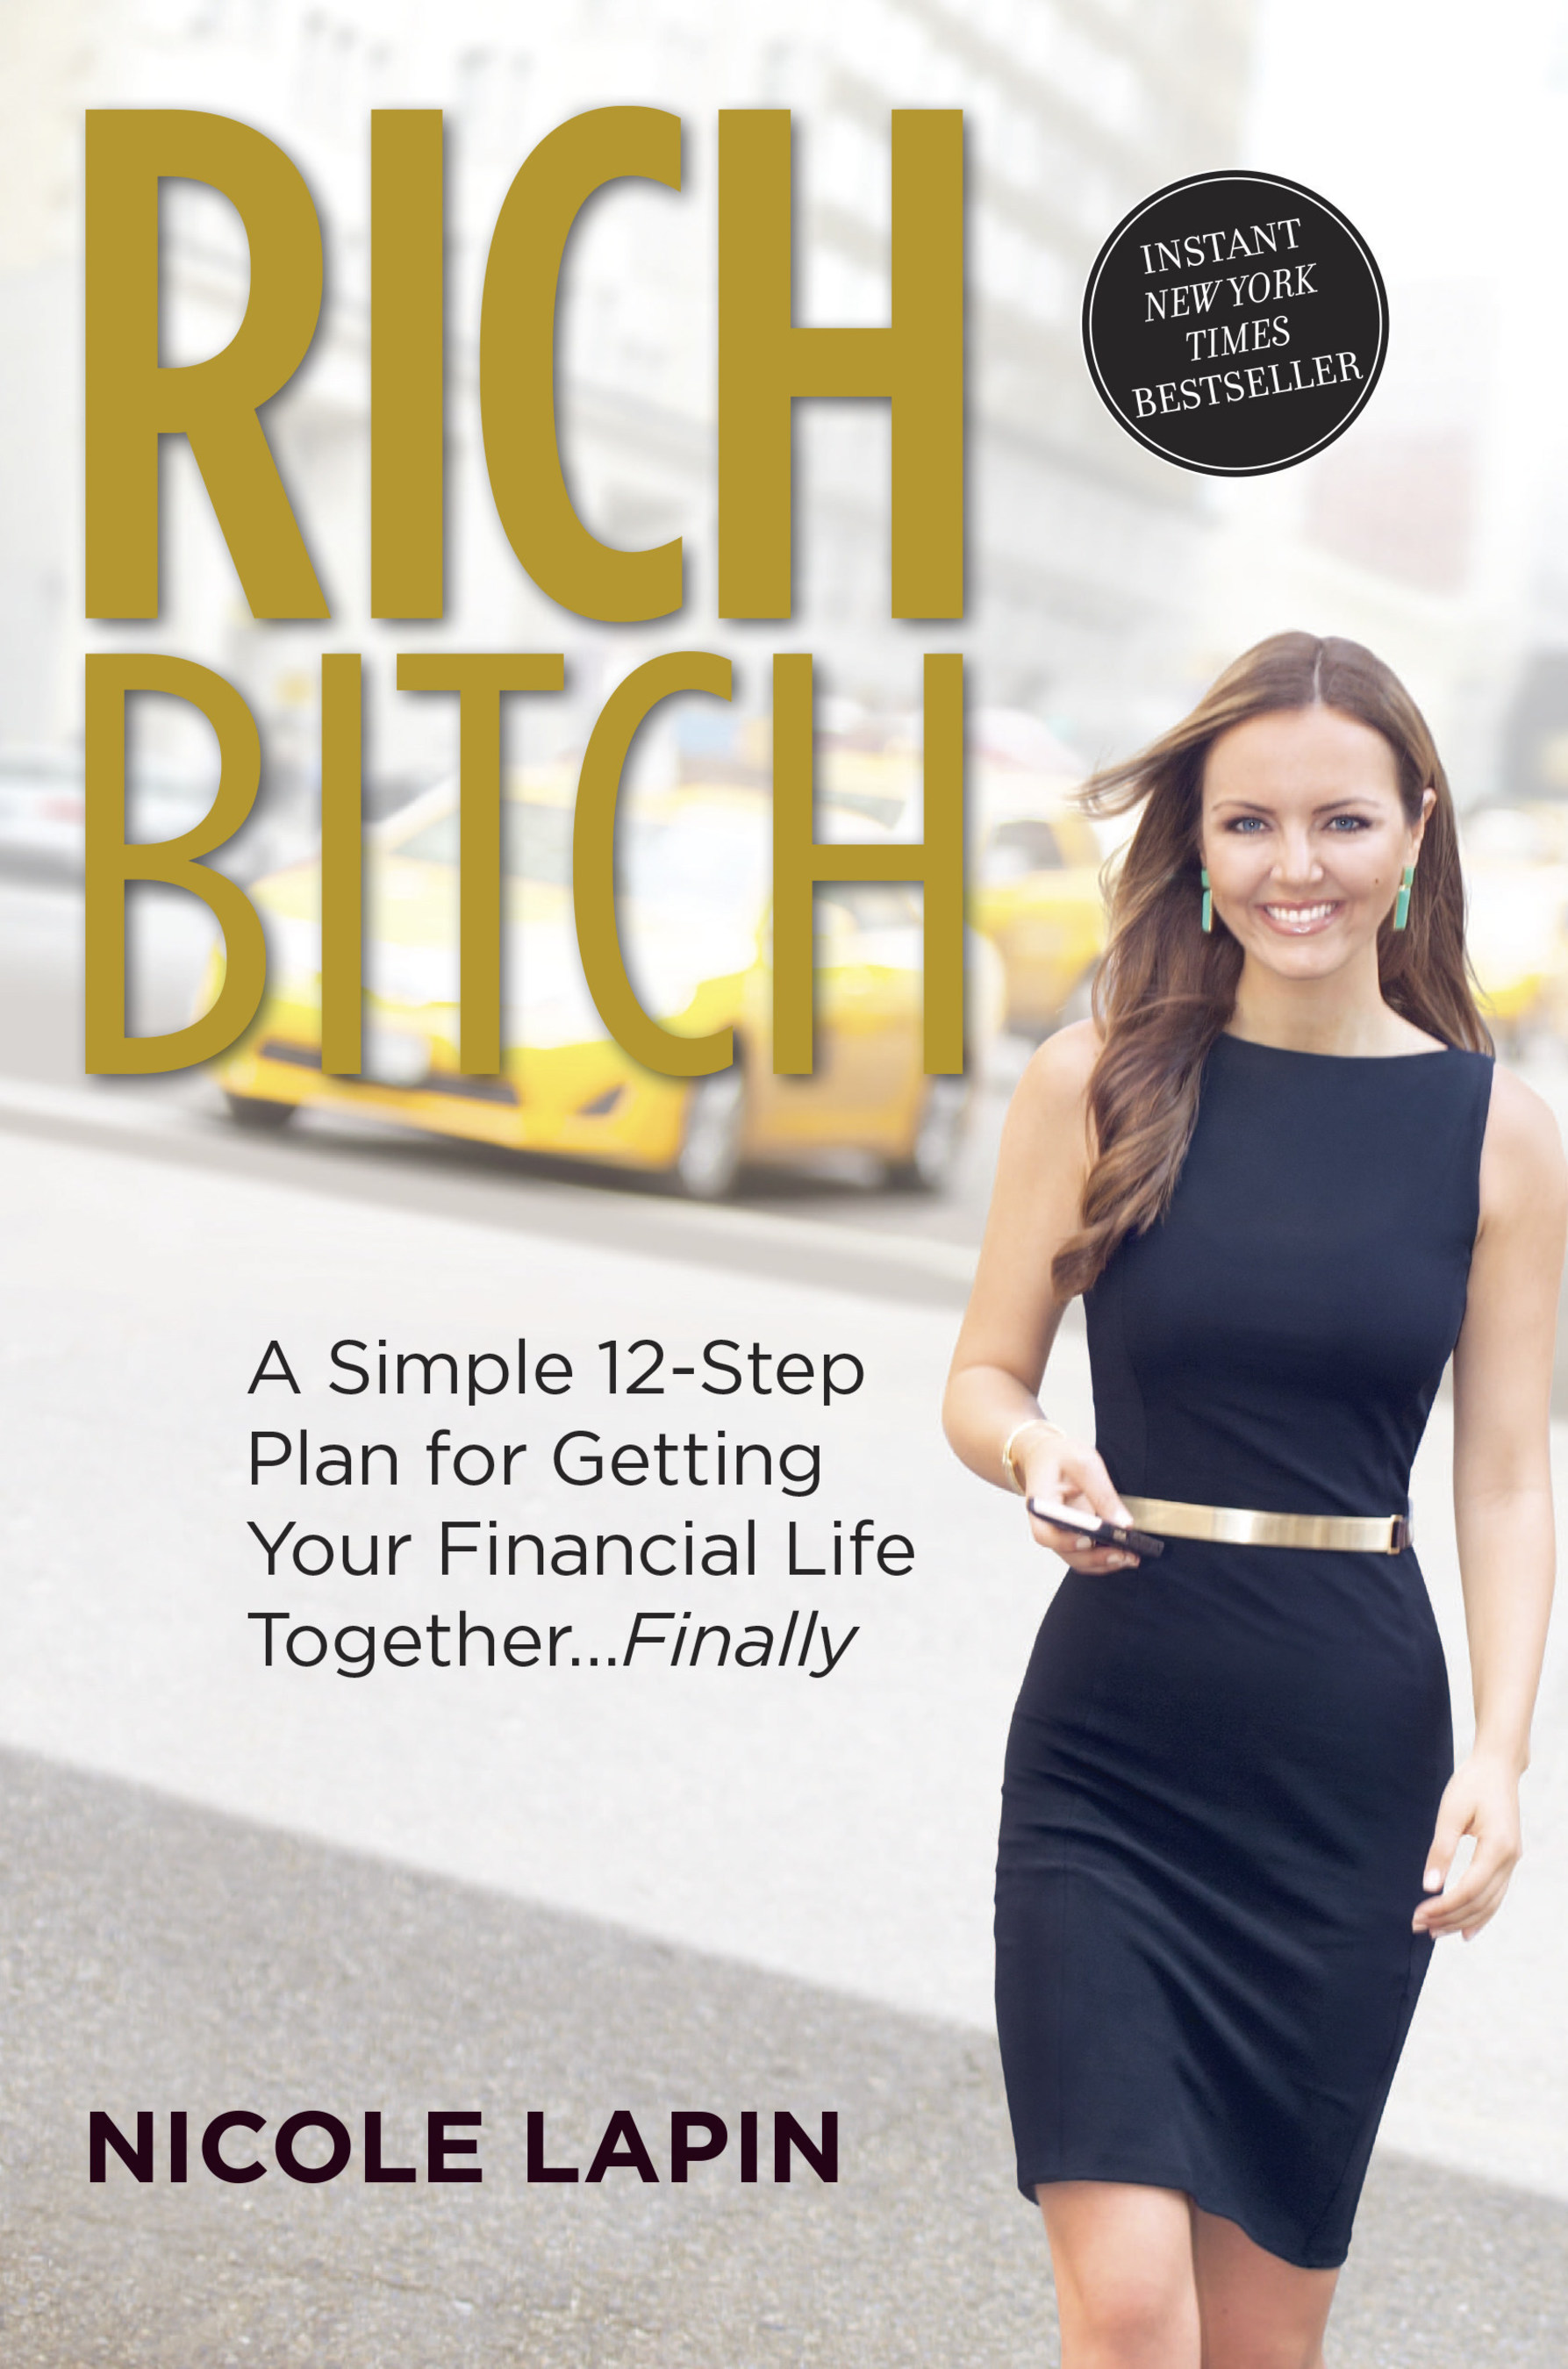 """Rich Bitch: A Simple 12-Step Plan for Getting Your Financial Life Together... Finally"" by Nicole Lapin  ..."